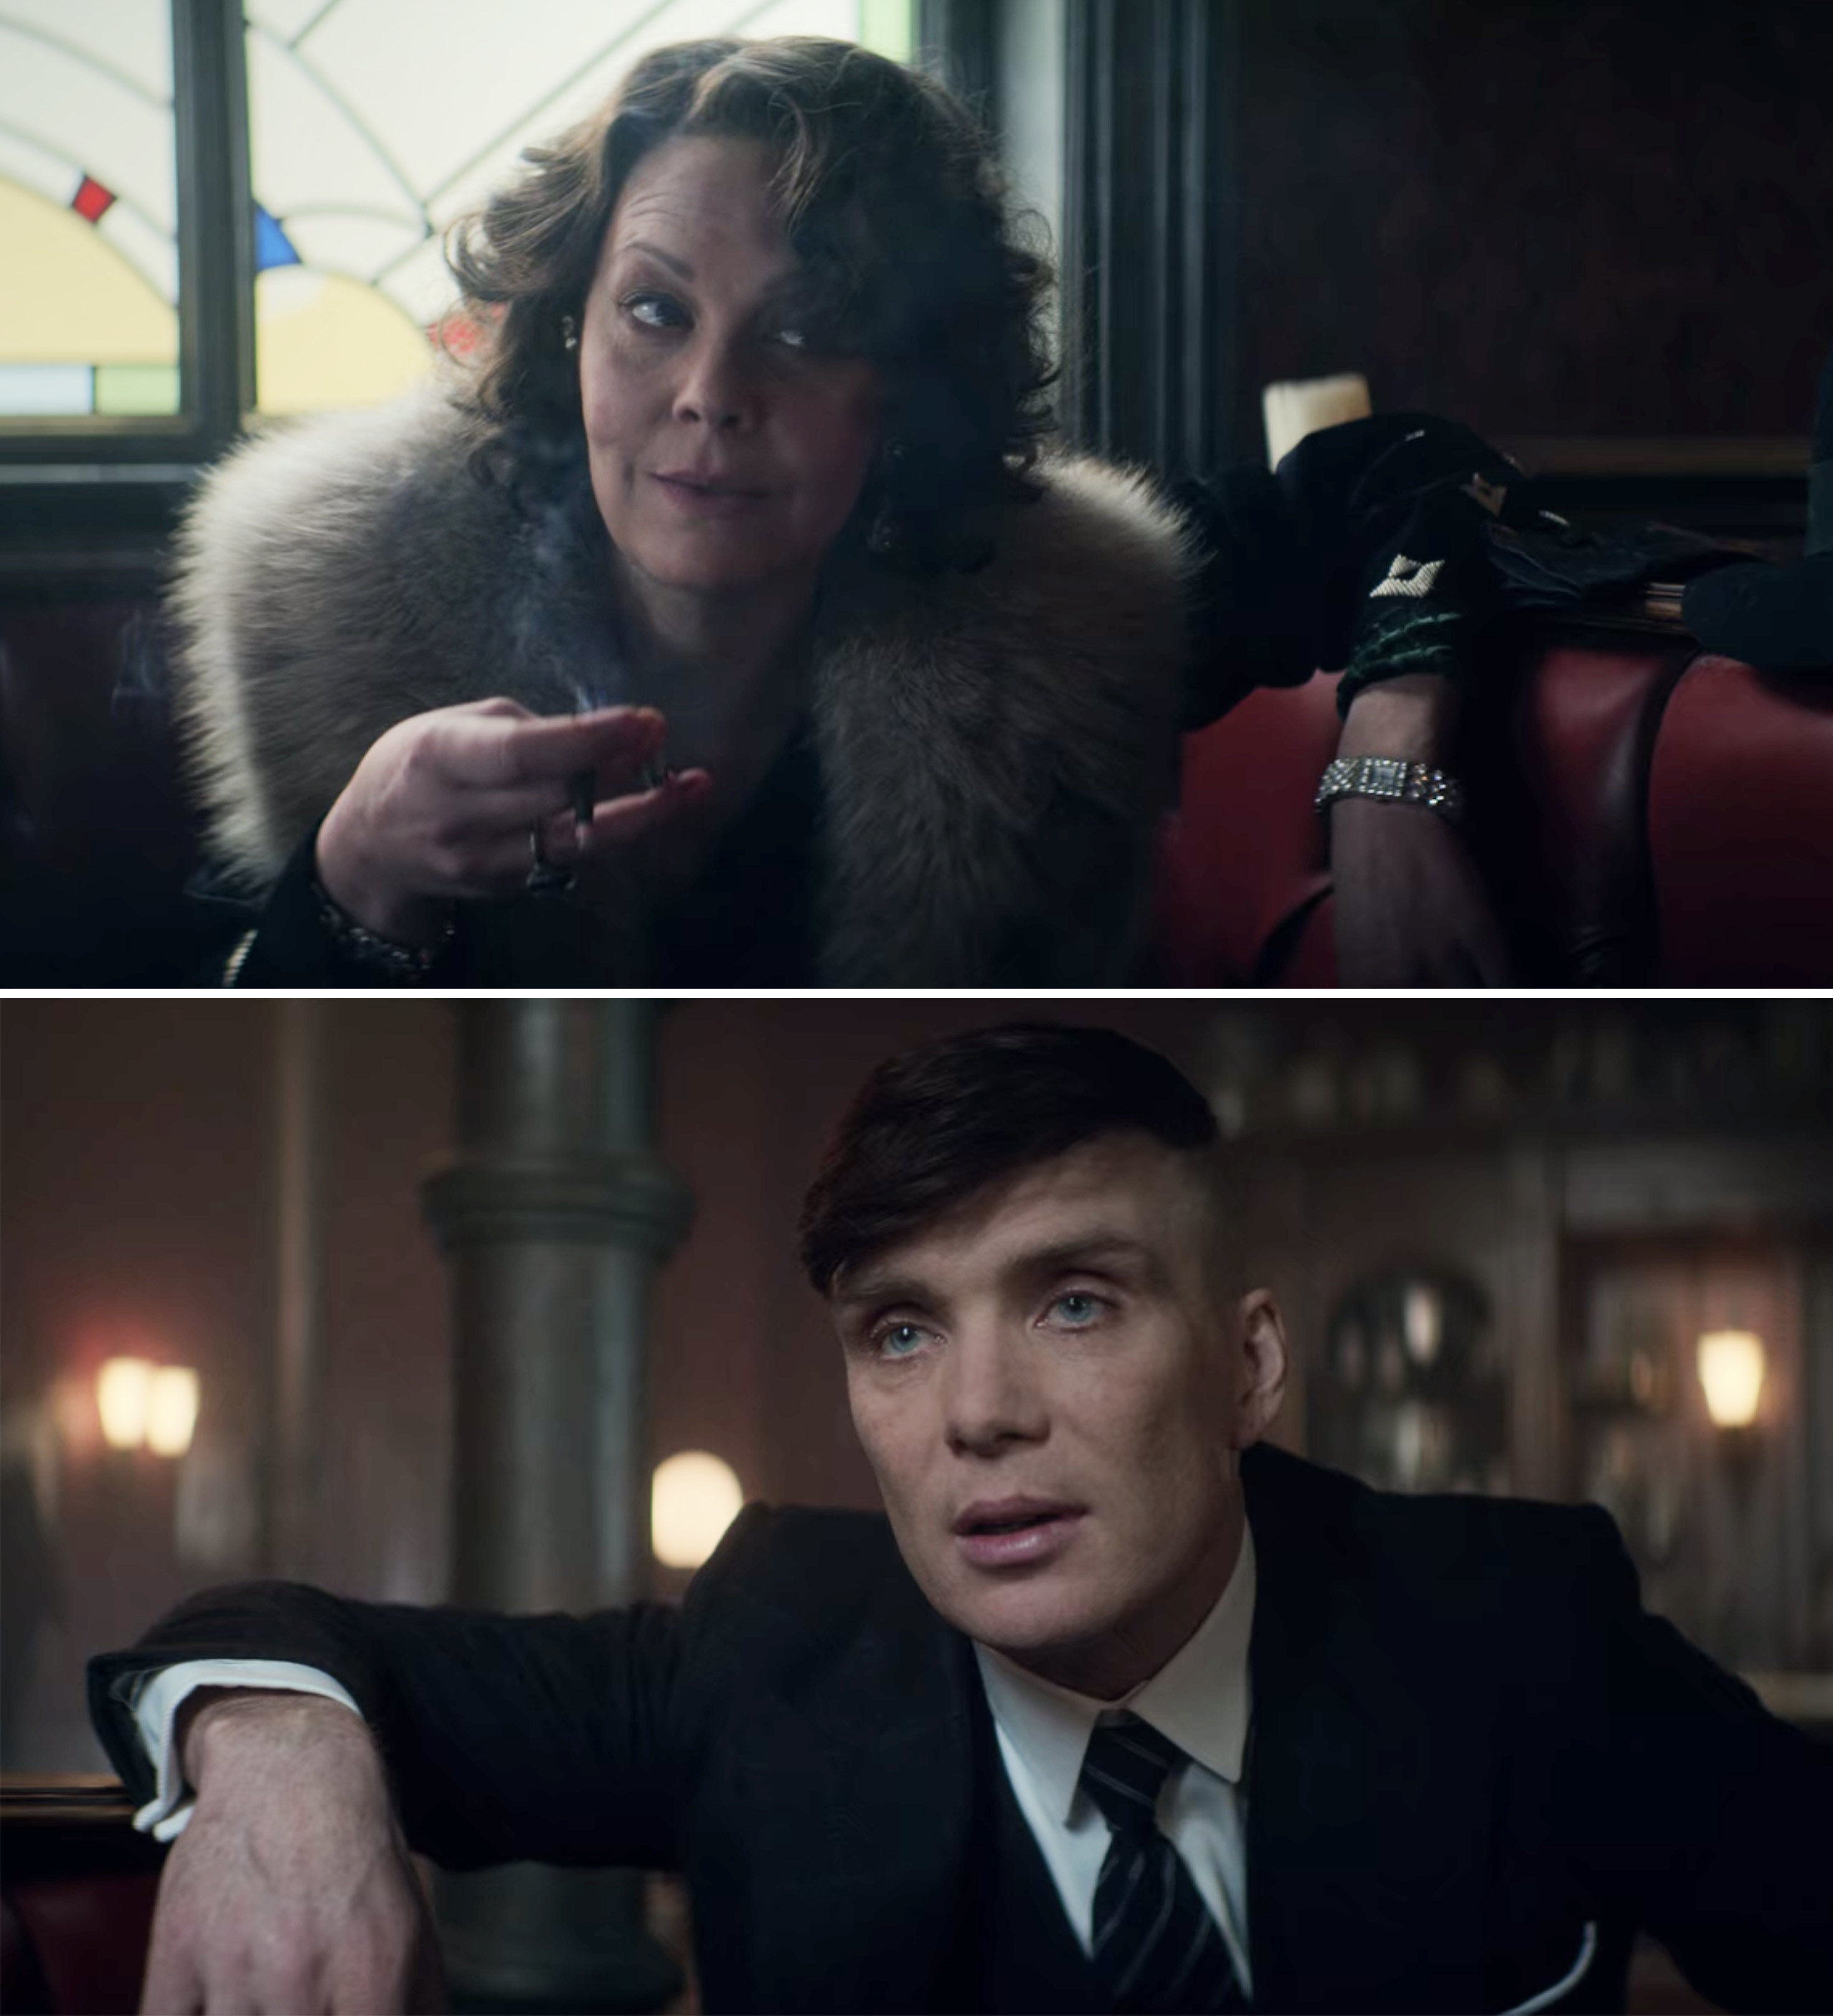 Helen and Cillian in a scene together